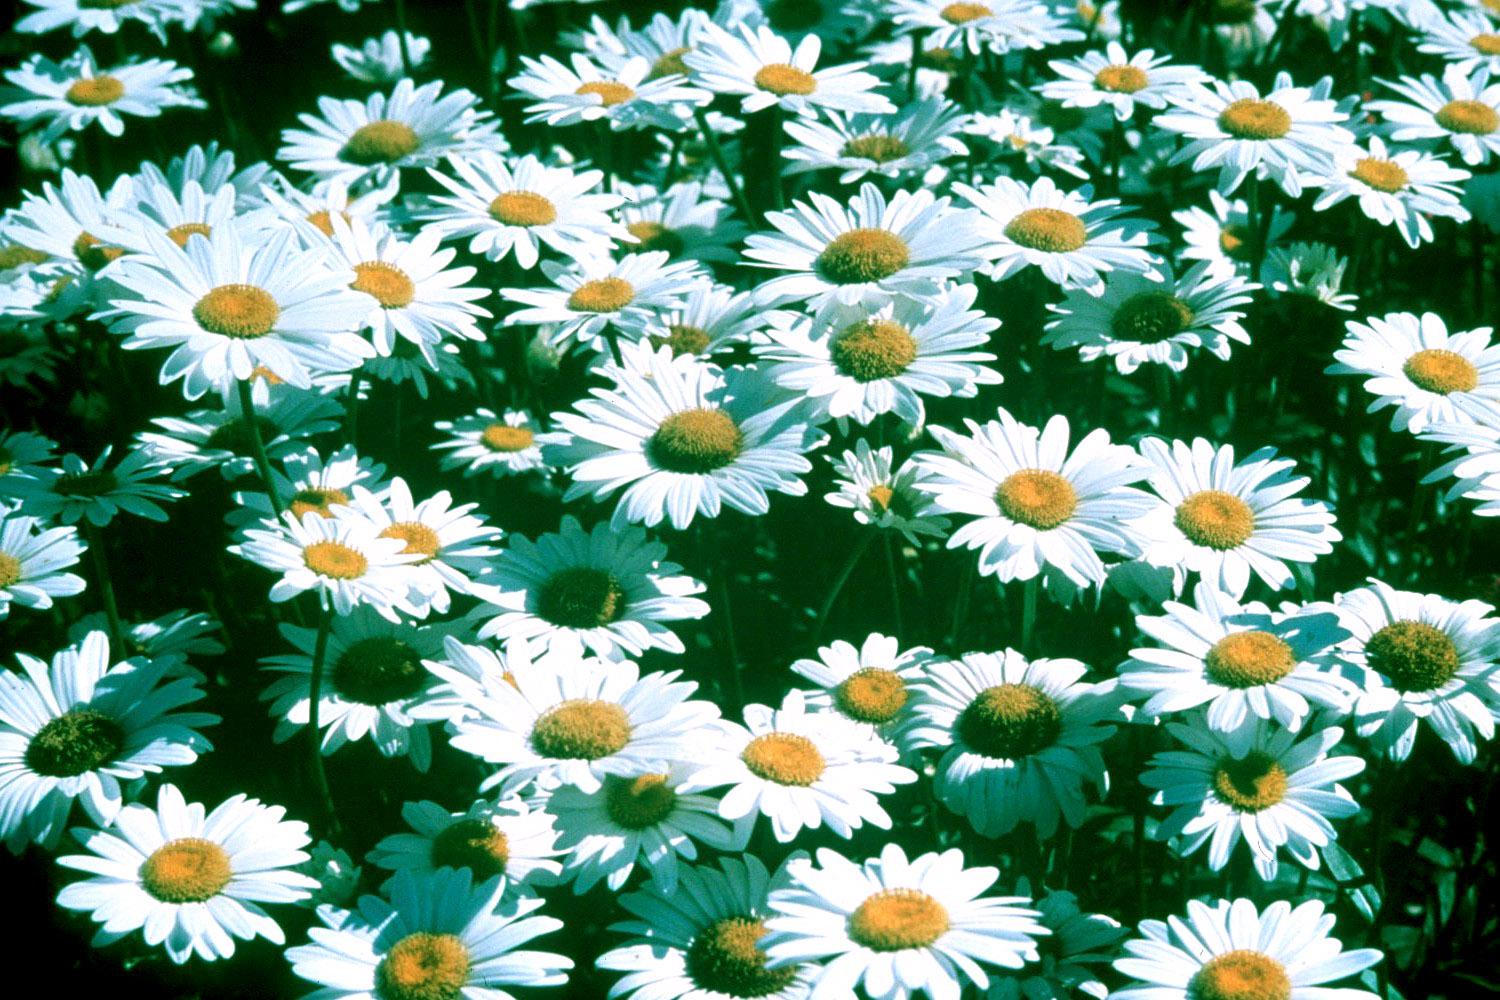 The old-fashioned shasta daisy is one of the most loved plants in the South. This variety, Becky, has been chosen as the Perennial Plant of the Year for 2003.